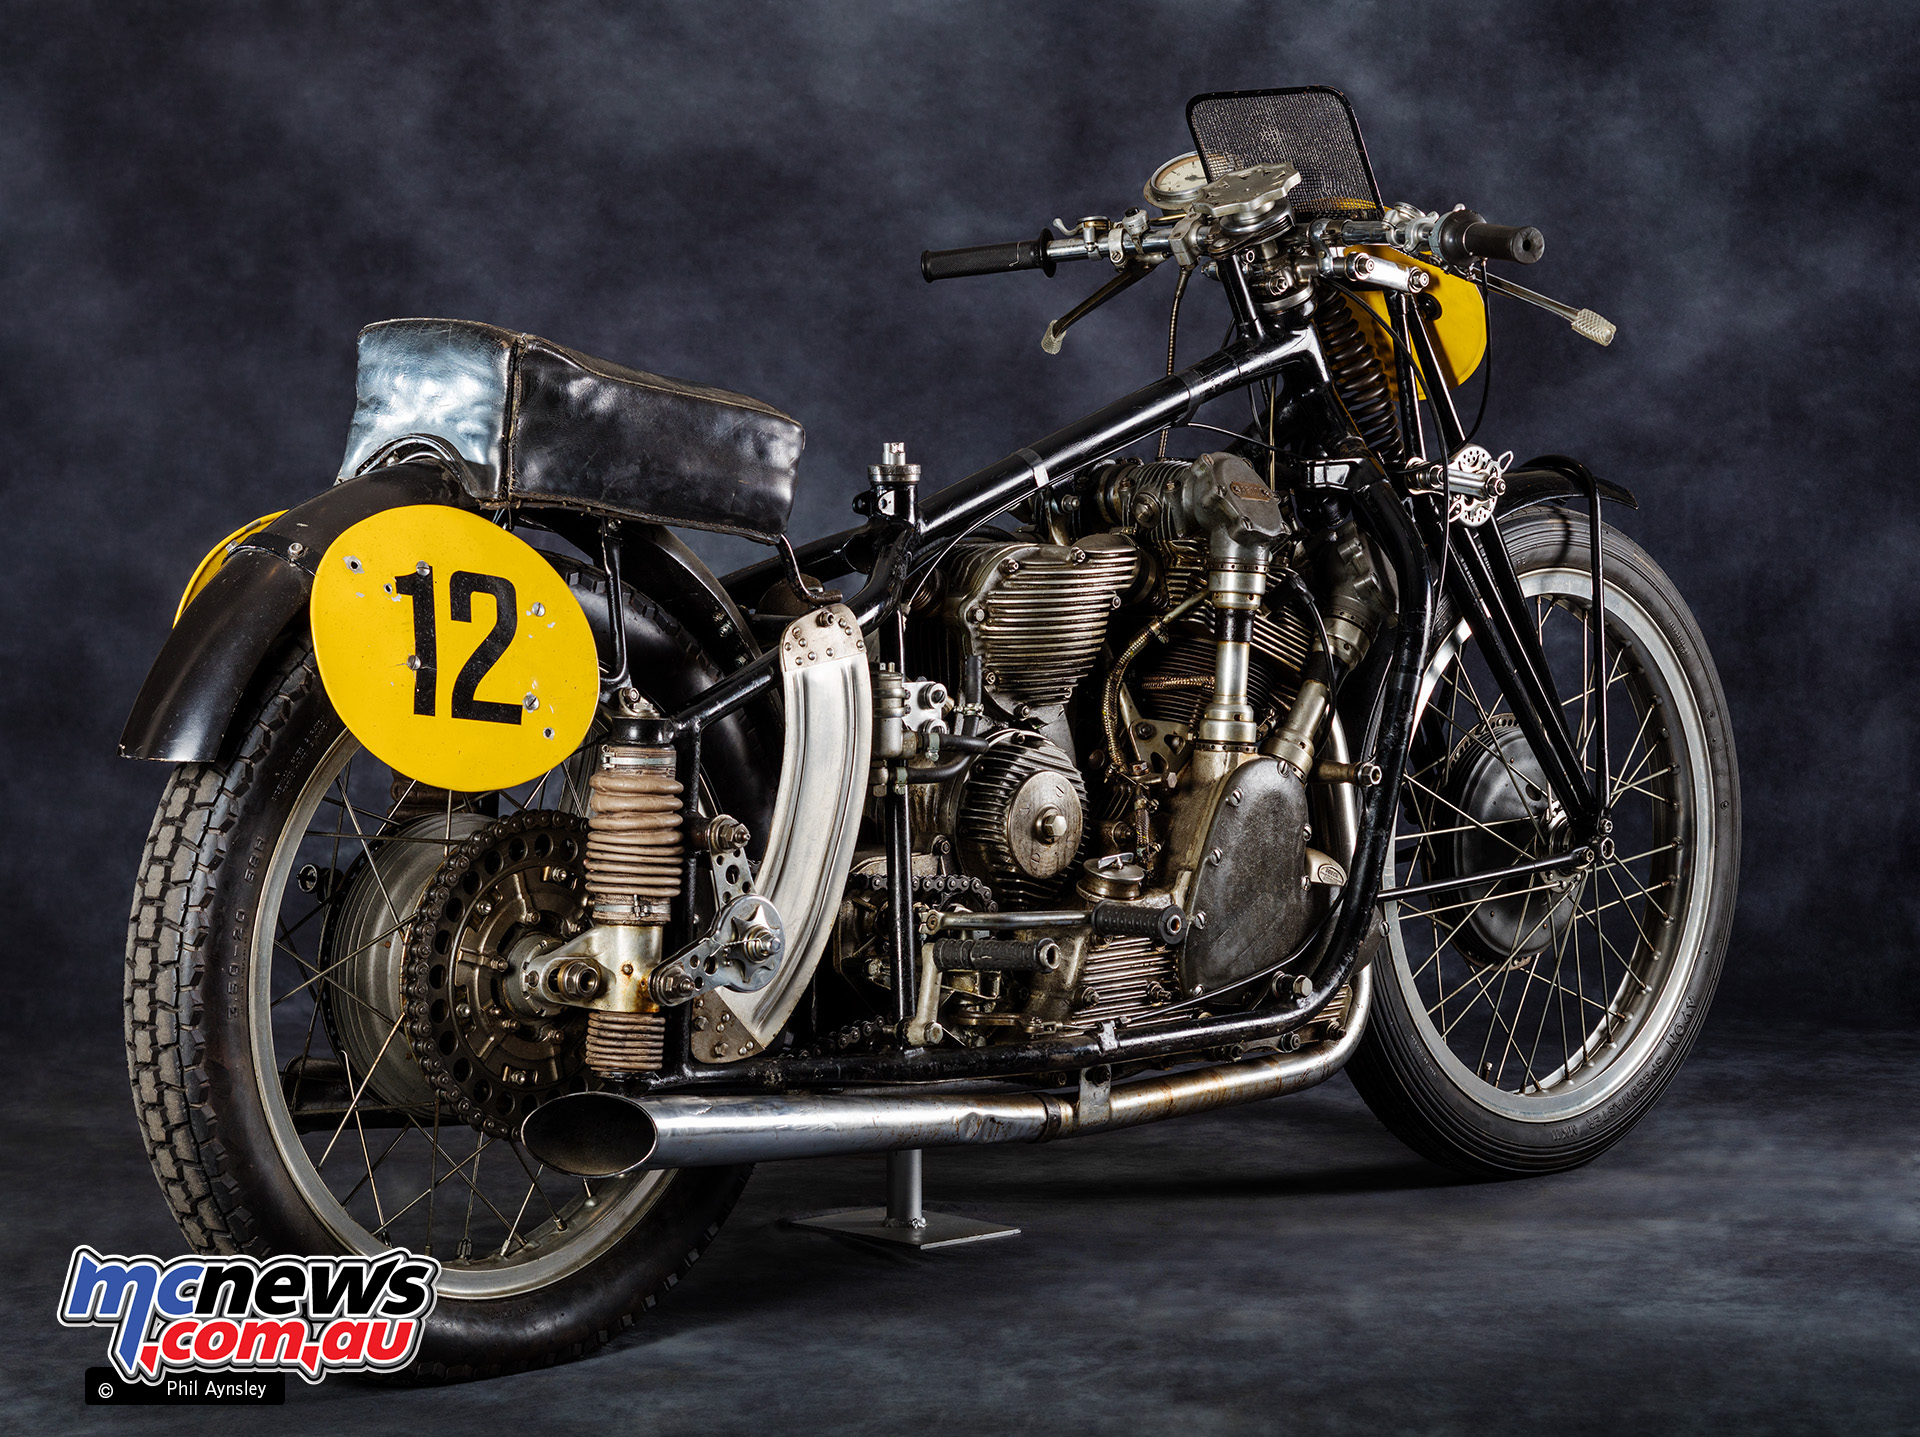 NSU RK500 | An Obscure German Racer from the 1930s